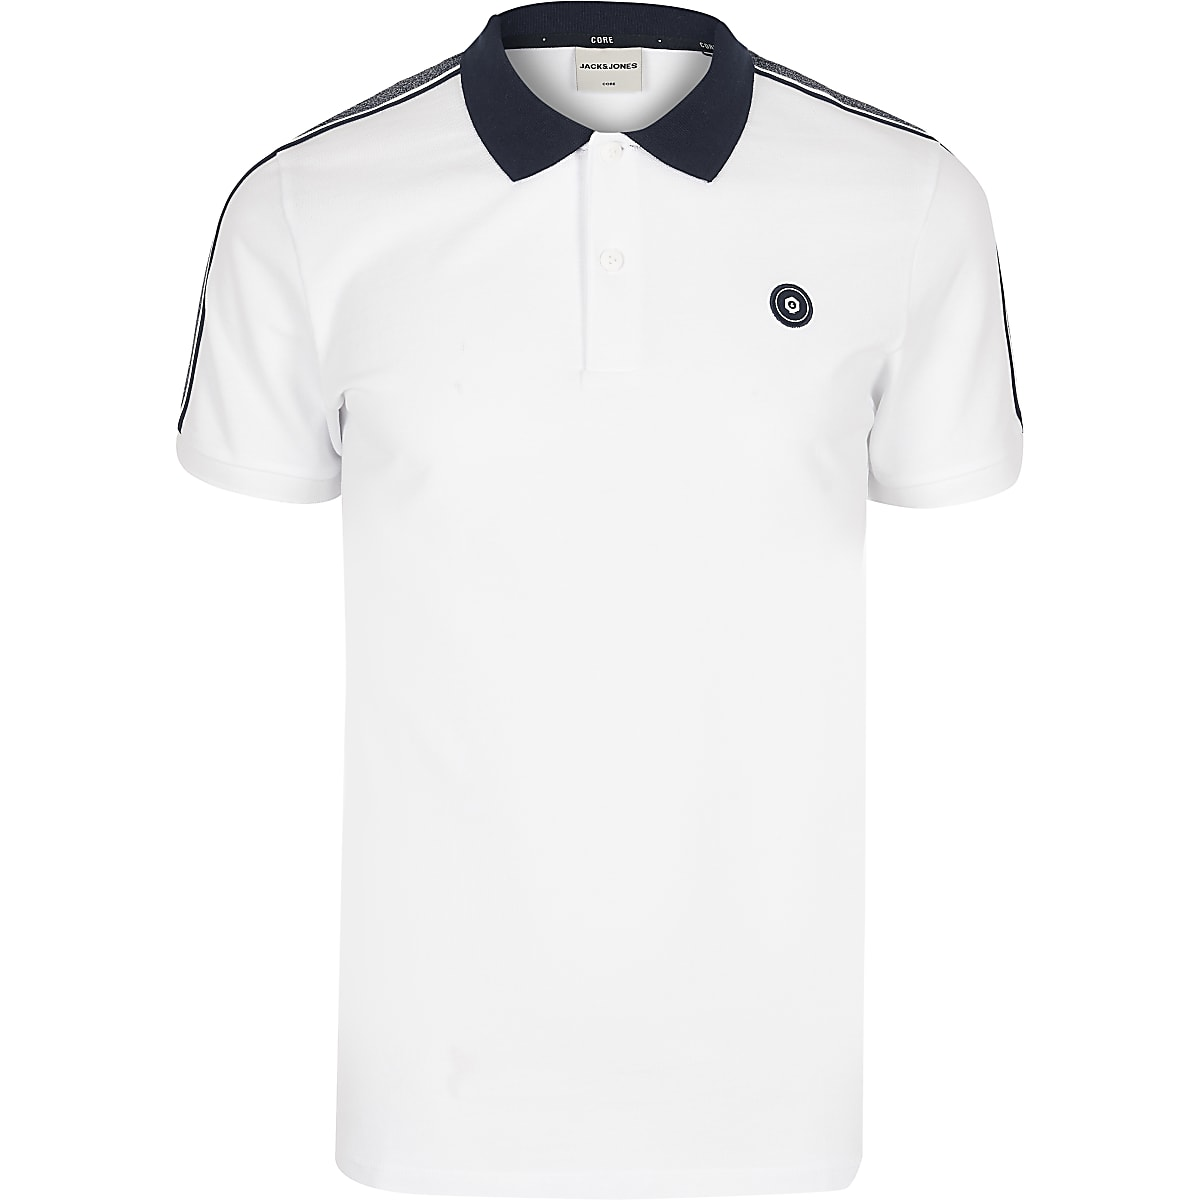 Jack and Jones white short sleeve polo shirt